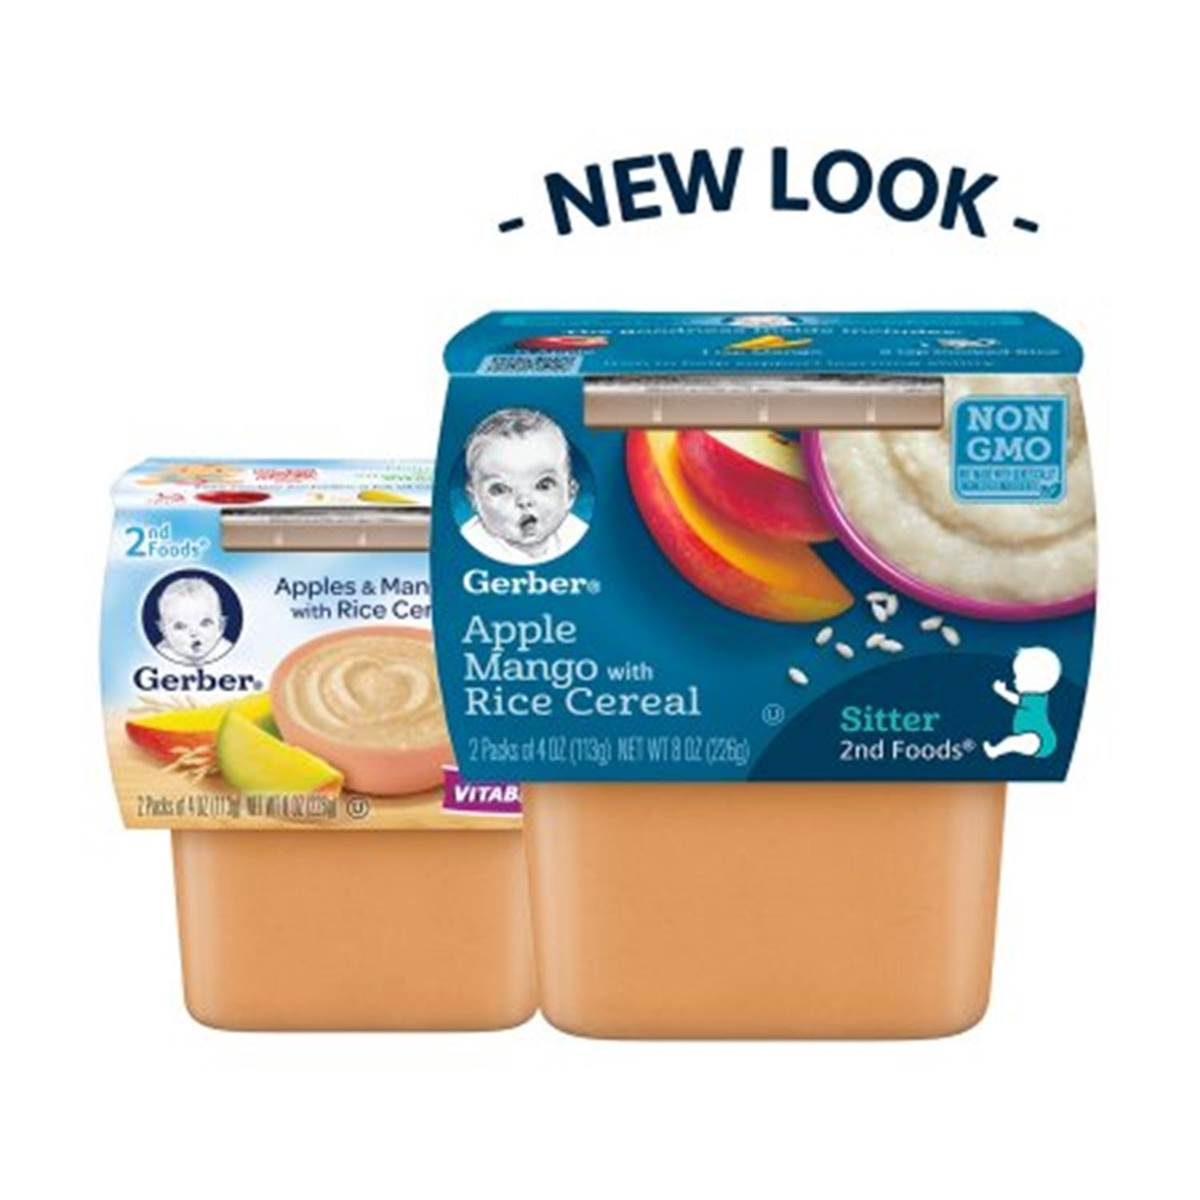 Gerber 2nd Foods 2pk 226g (8oz) - Apples Mangoes with Rice Cereal